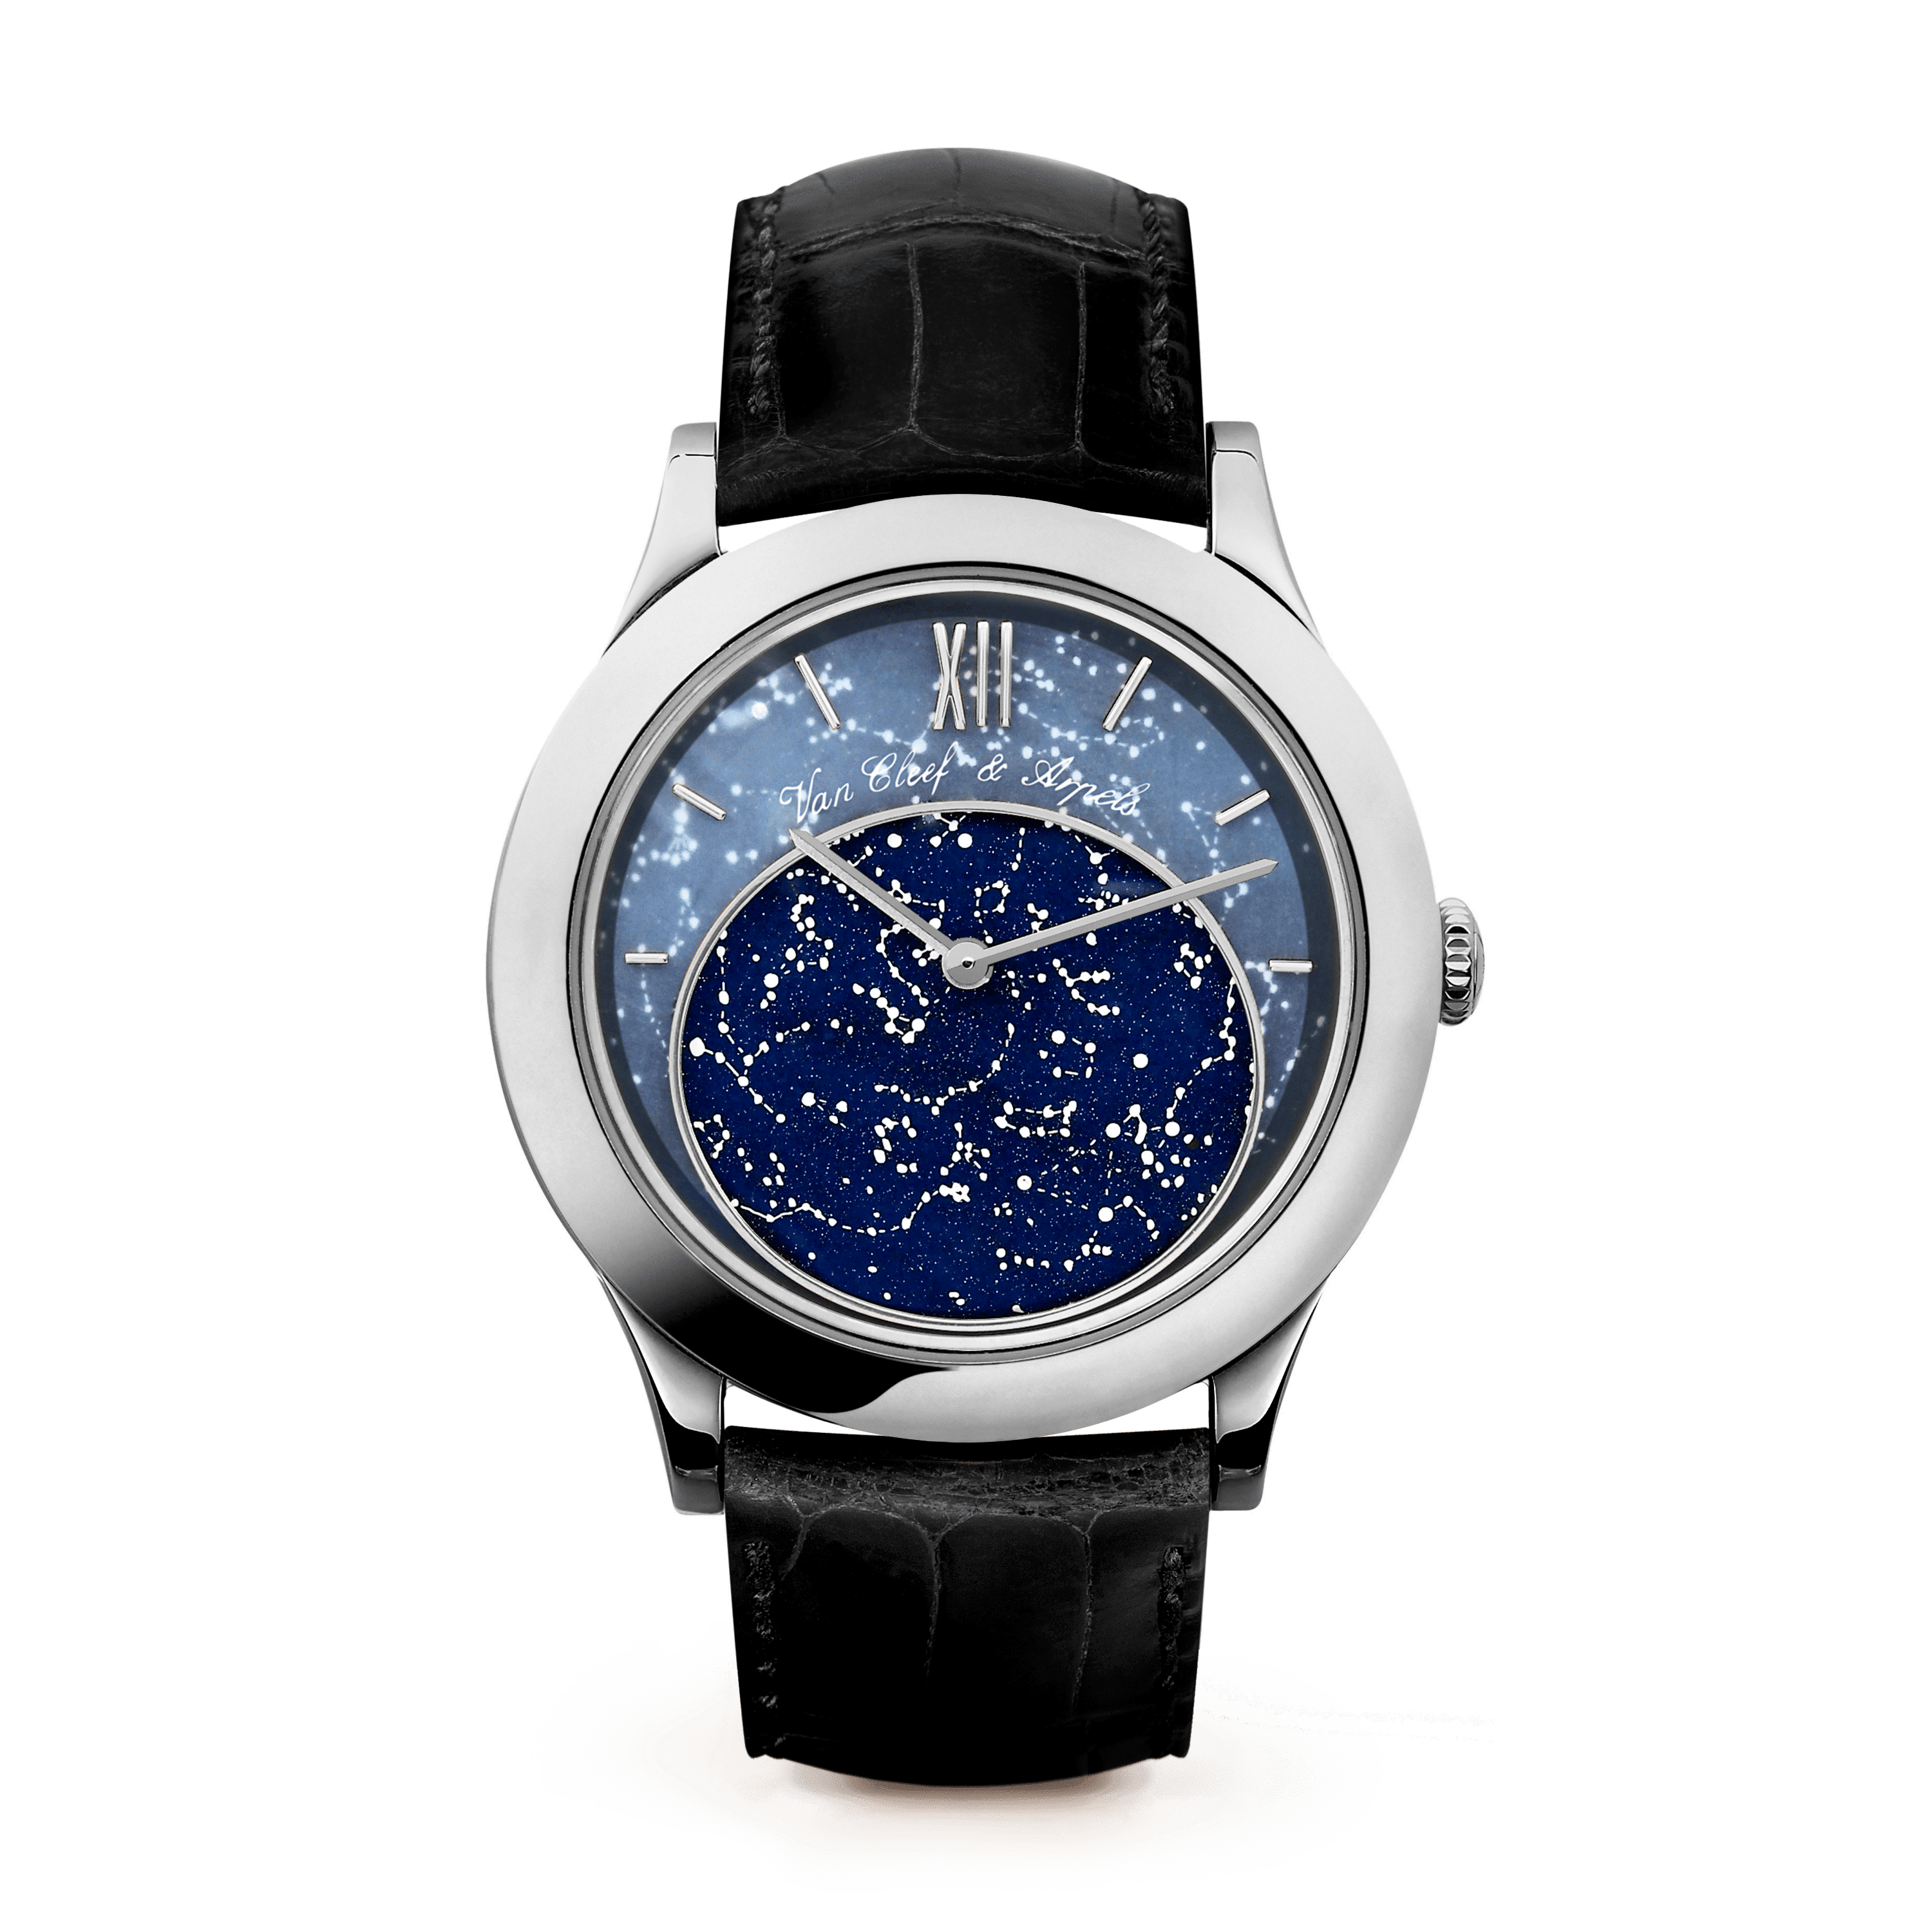 Midnight in Paris Watch,Satin-finish alligator, square scale - Front View - VCARN5HI00 - Van Cleef & Arpels